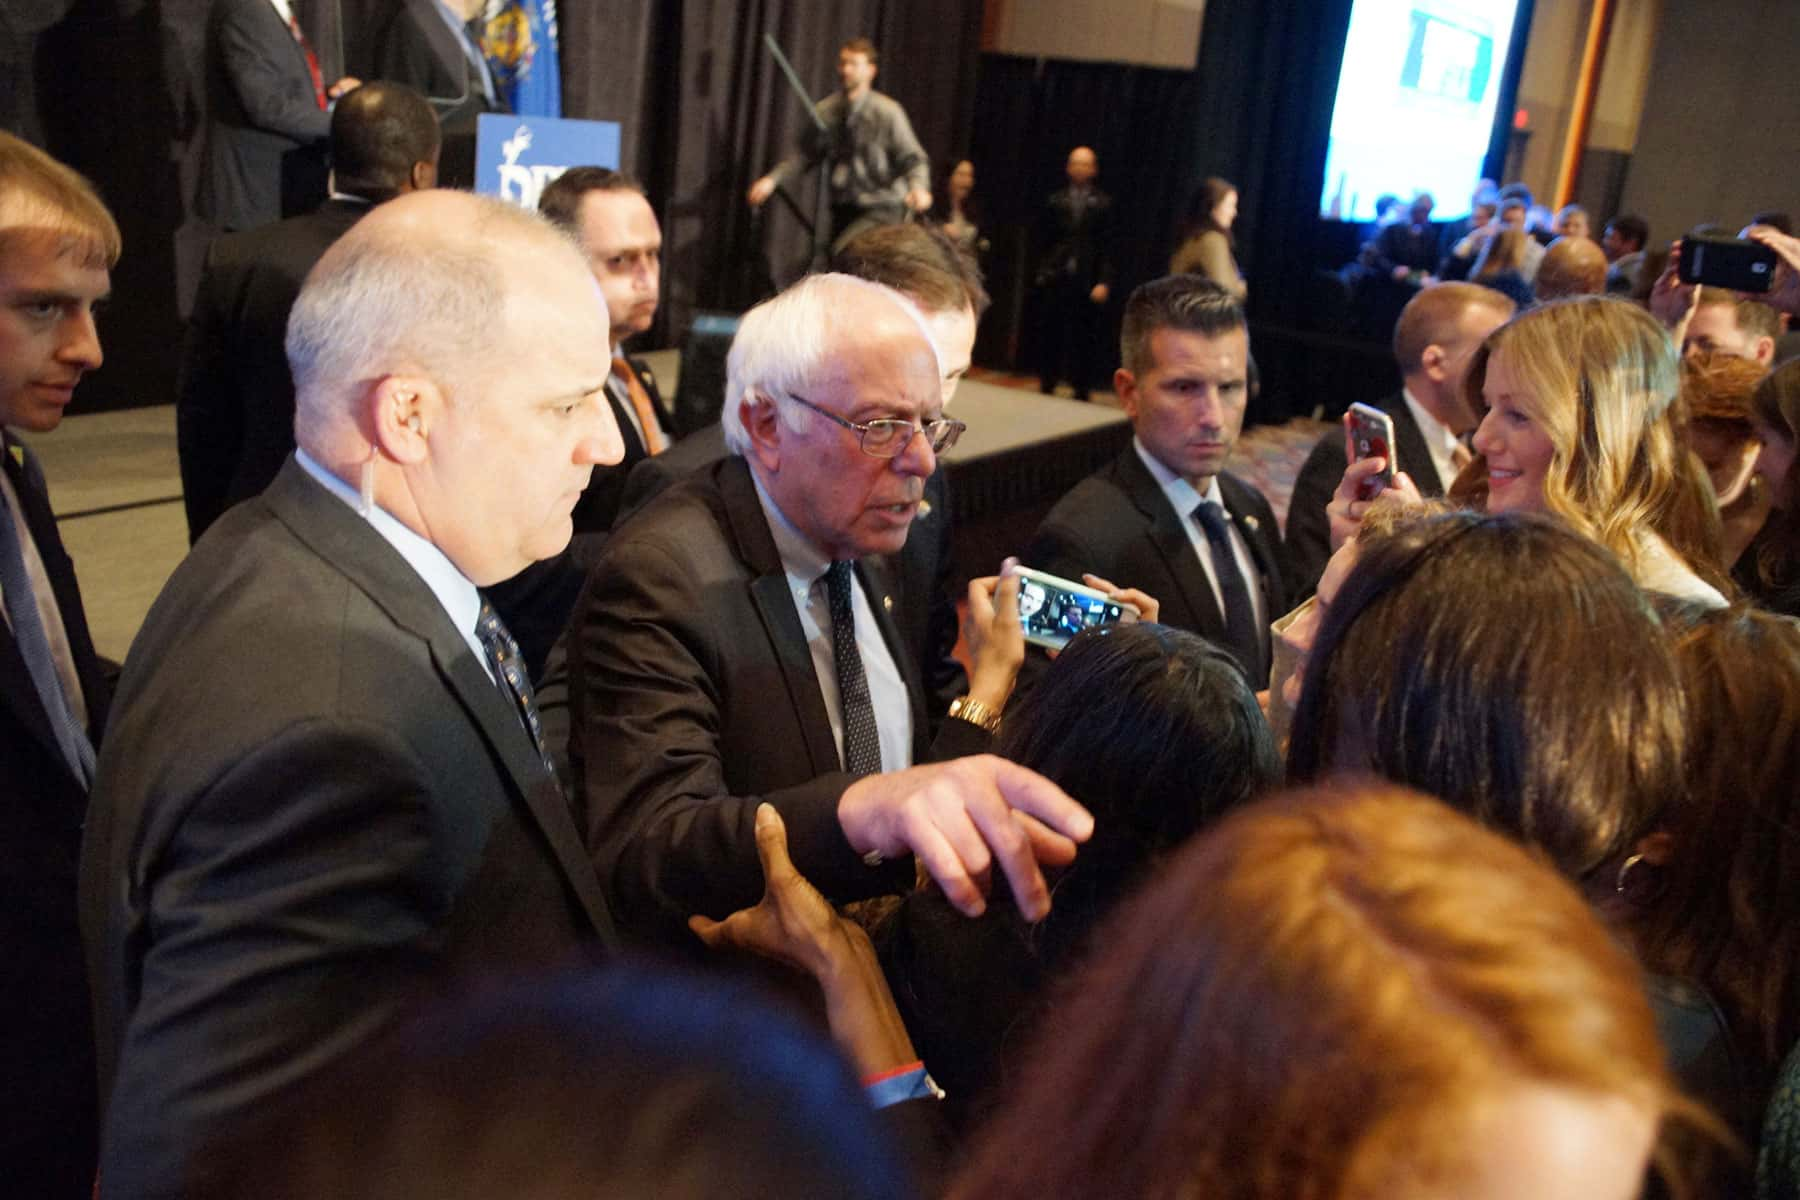 040216_DemParty_1794